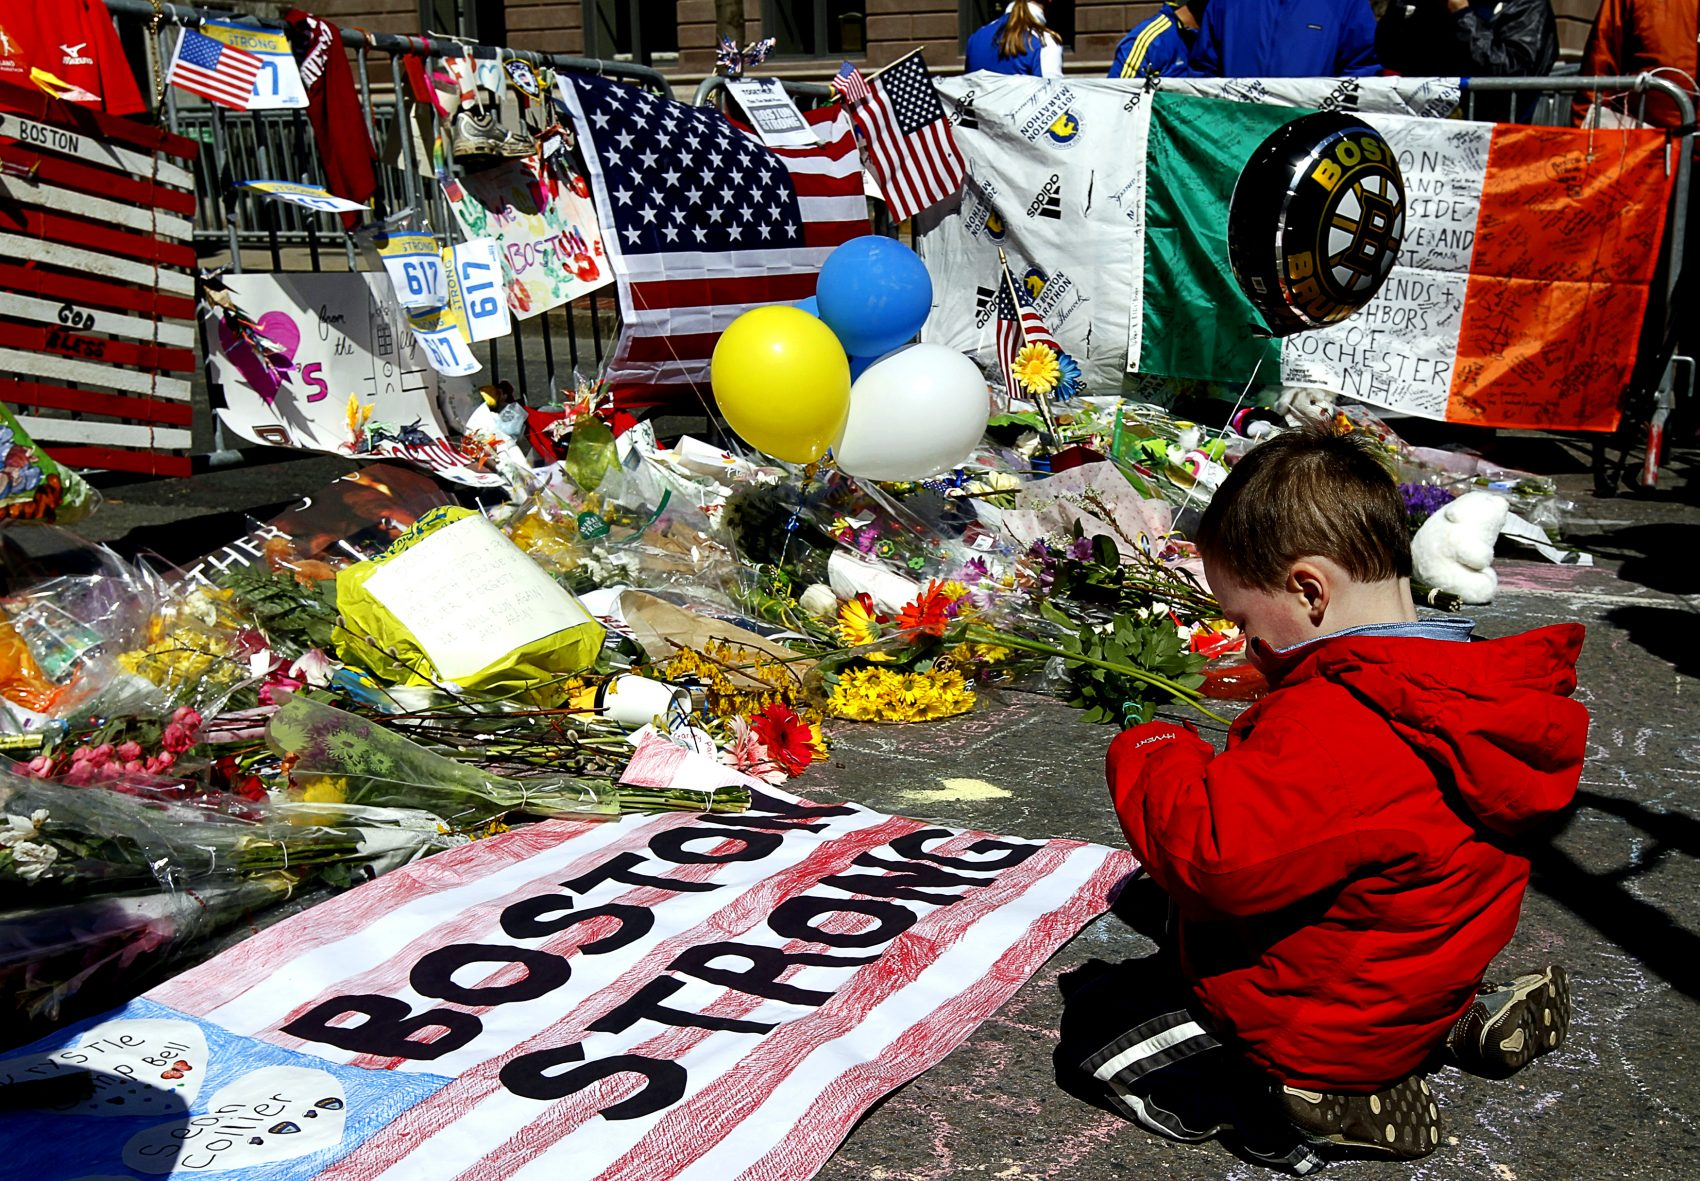 Boston Bombing Day 1: The Stunning Stop the Killers Made After the Attack